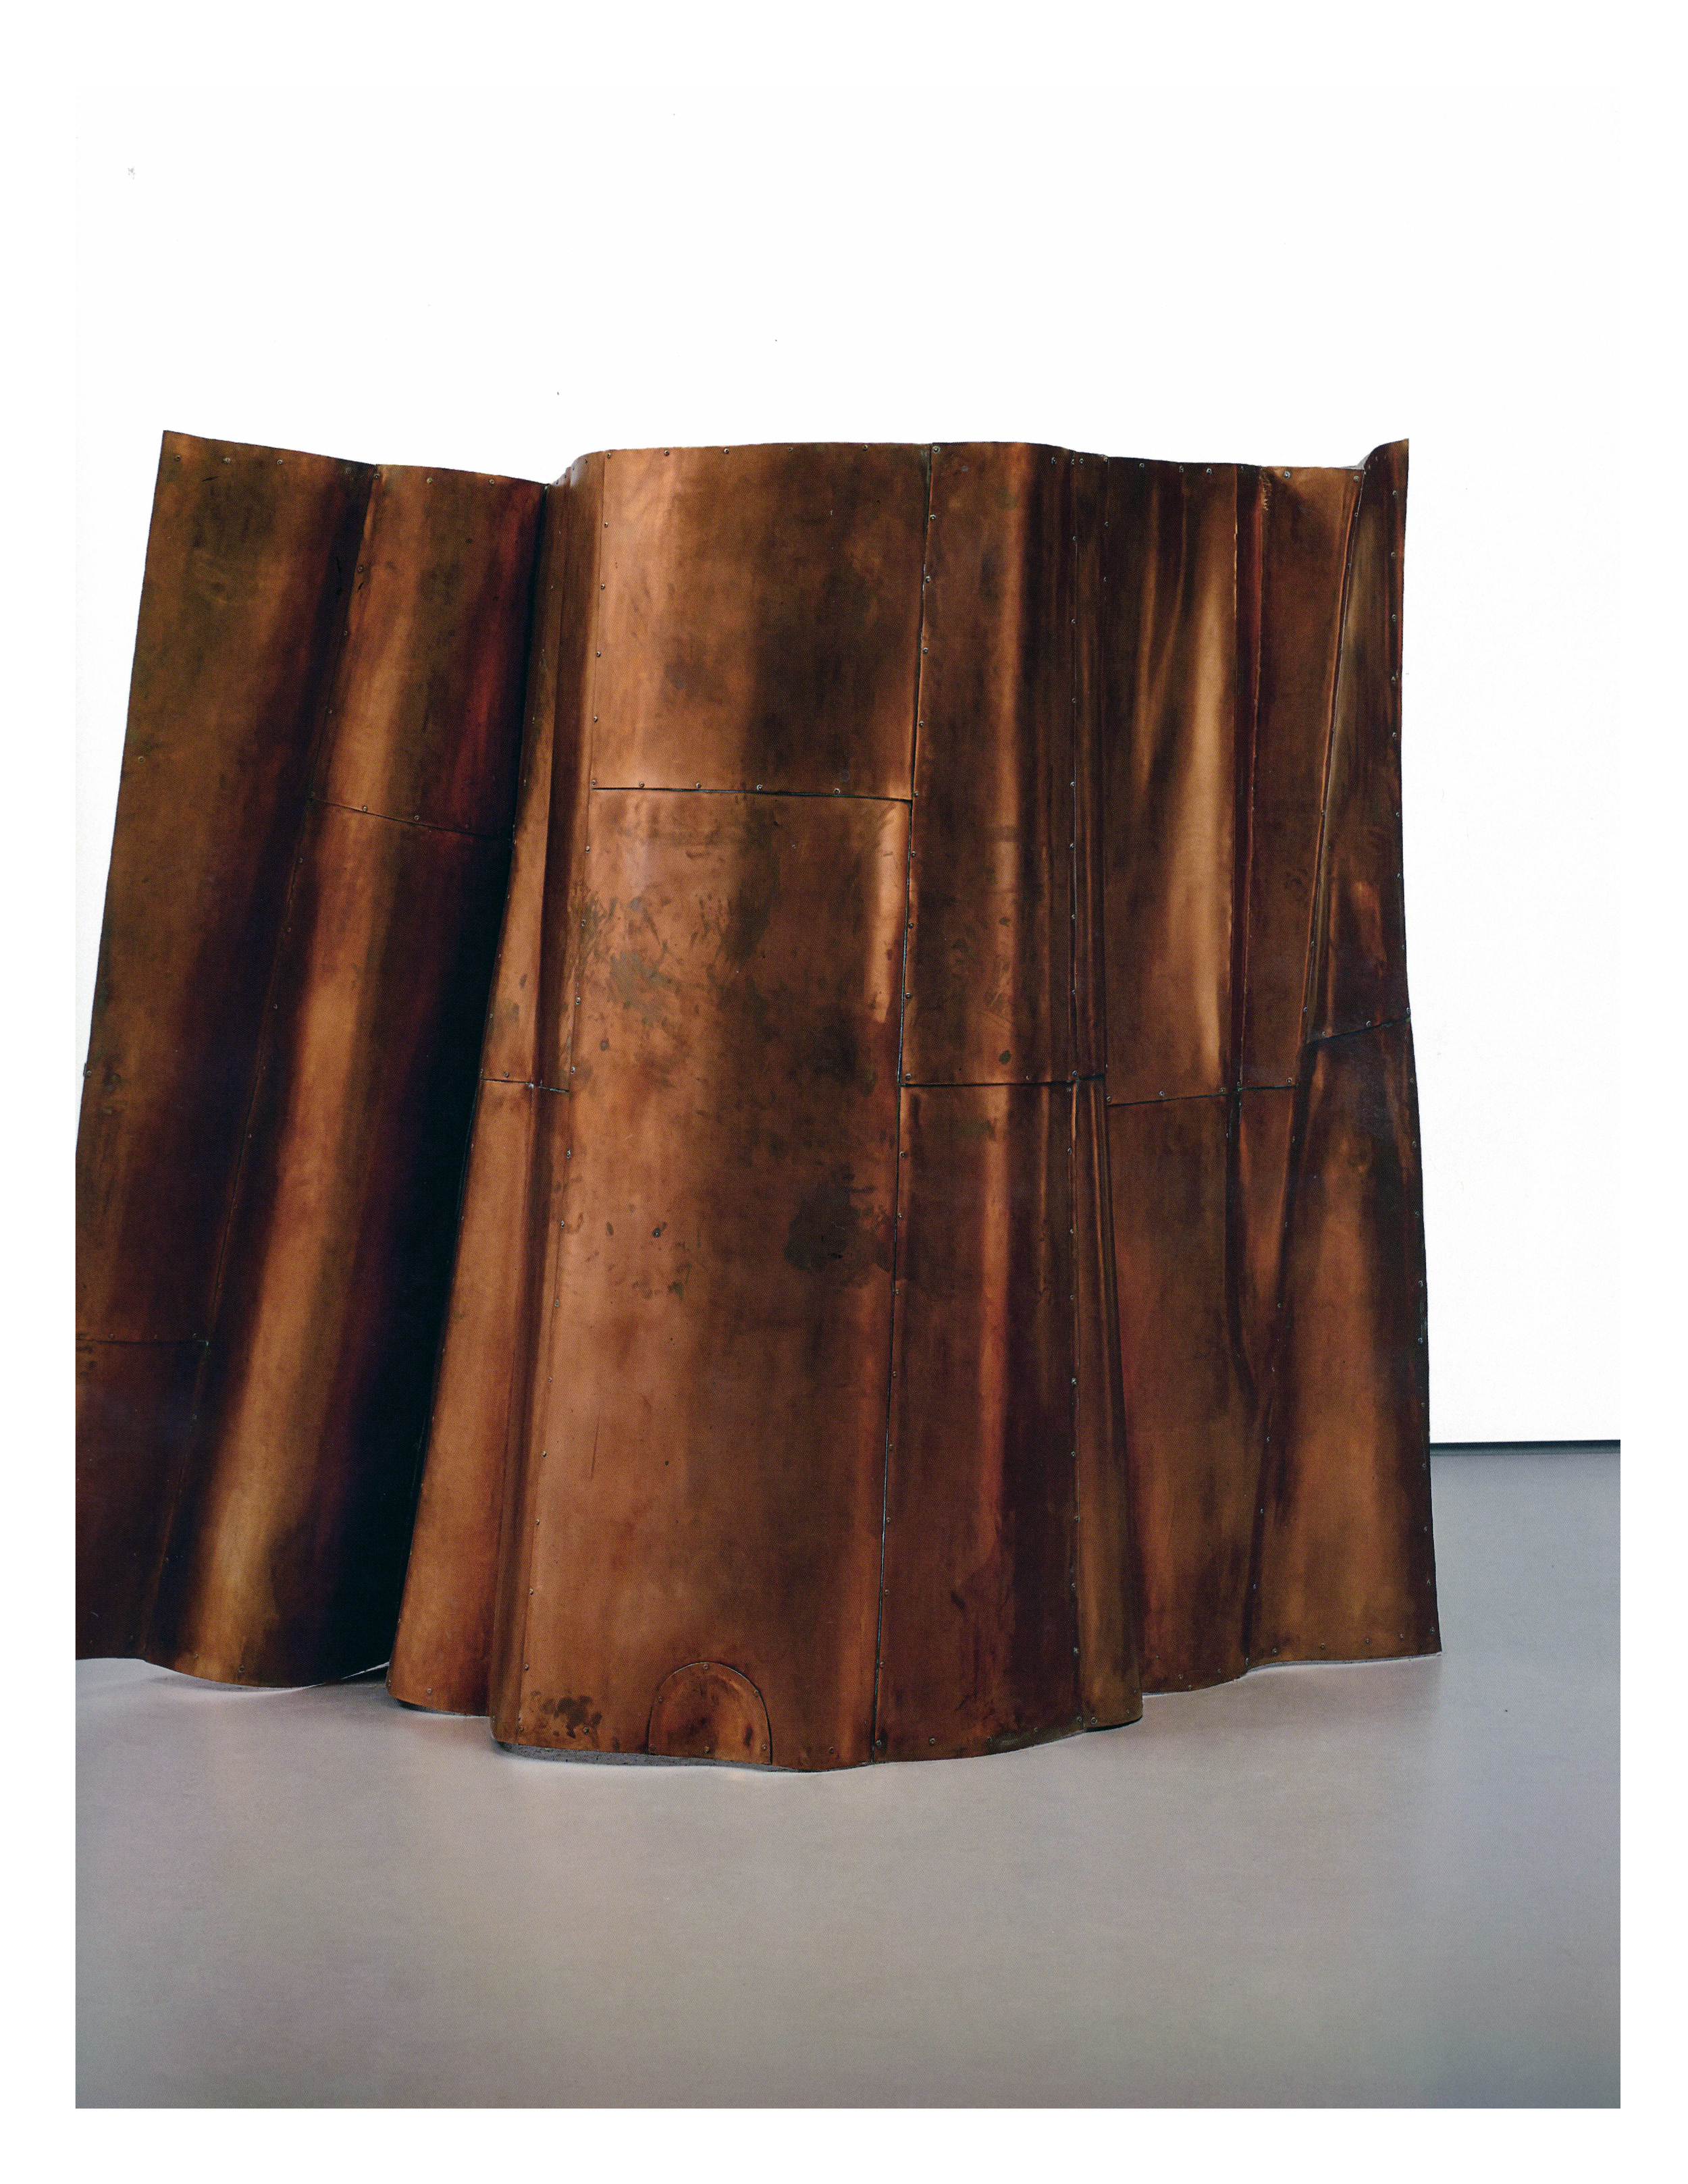 Danh Vo,  We the People (detail), Element #D2 , 2011-2013  Copper  Private Collection   Image: Phillips Contemporary Art, London Evening Sale print catalog, June 29, 2015.